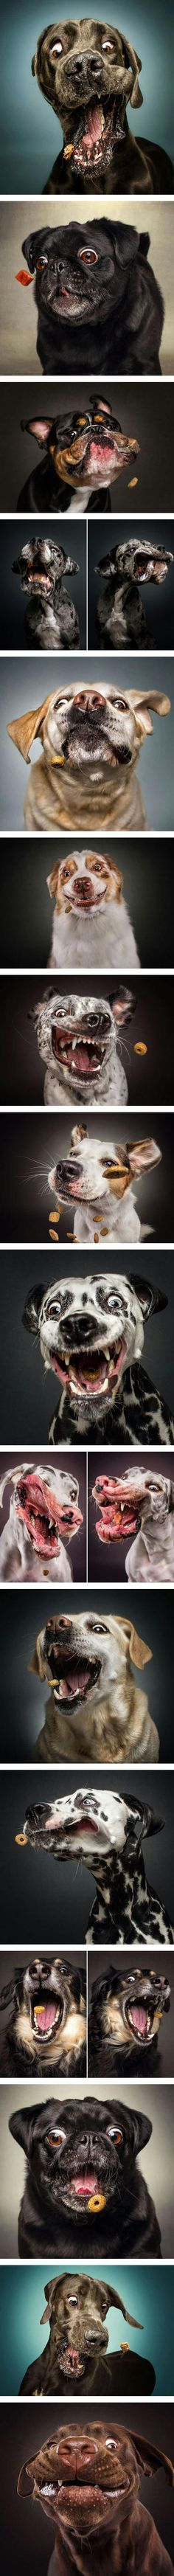 In case your having a bad dat here are some doggos